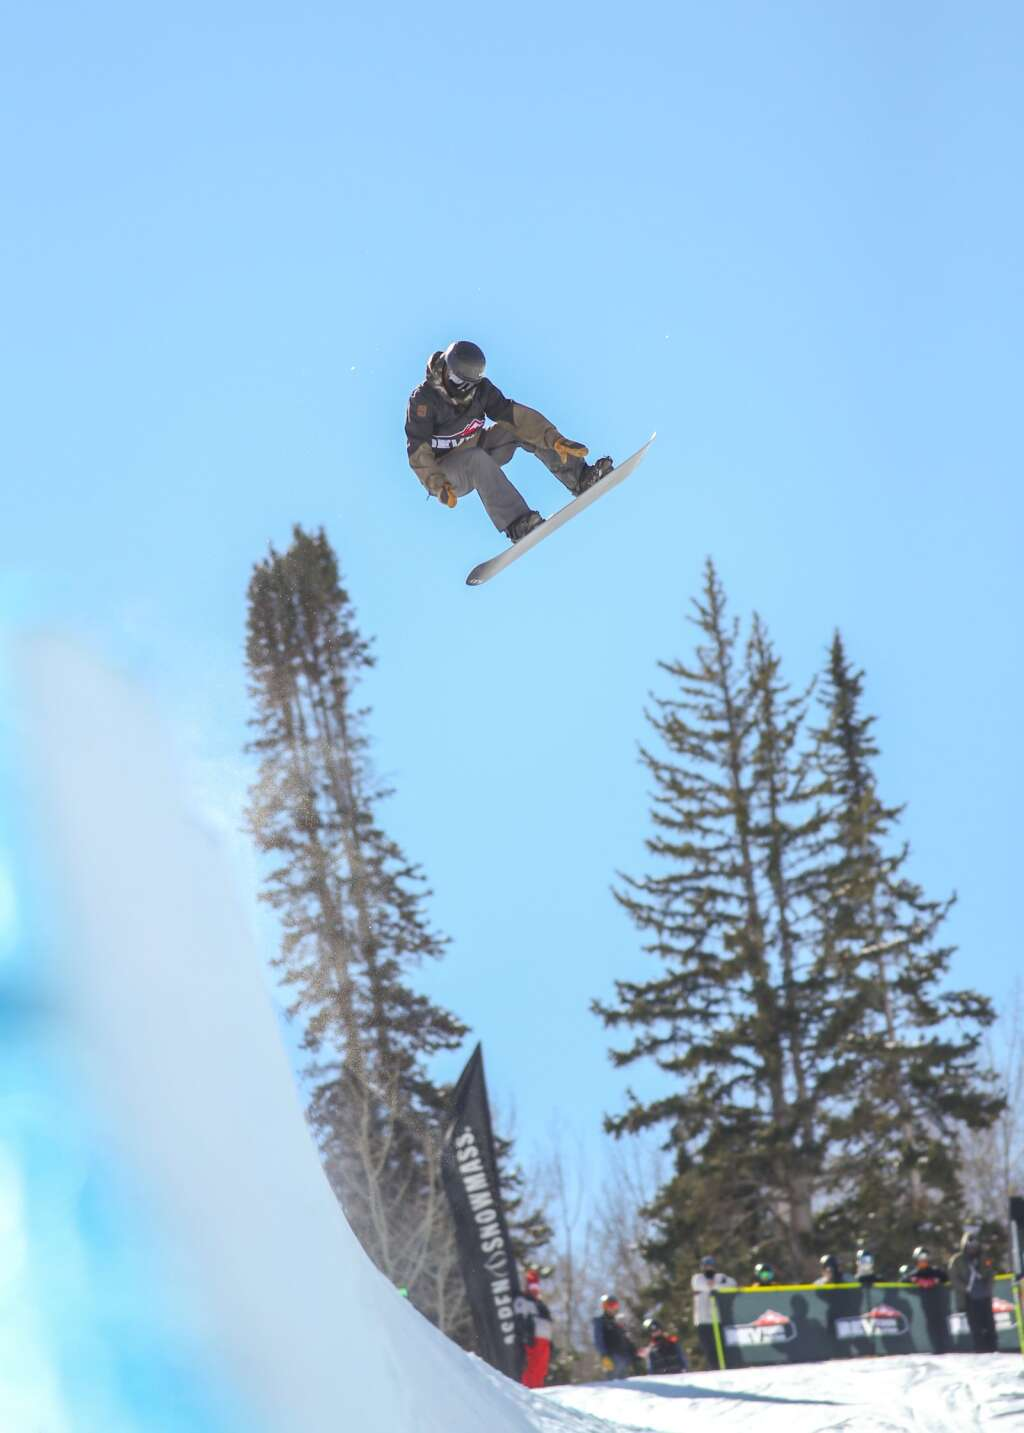 Jason Wolle competes in the men's snowboard halfpipe contest at the U.S. Revolution Tour stop on Thursday, Feb. 25, 2021, at Buttermilk Ski Area. Photo by Austin Colbert/The Aspen Times.